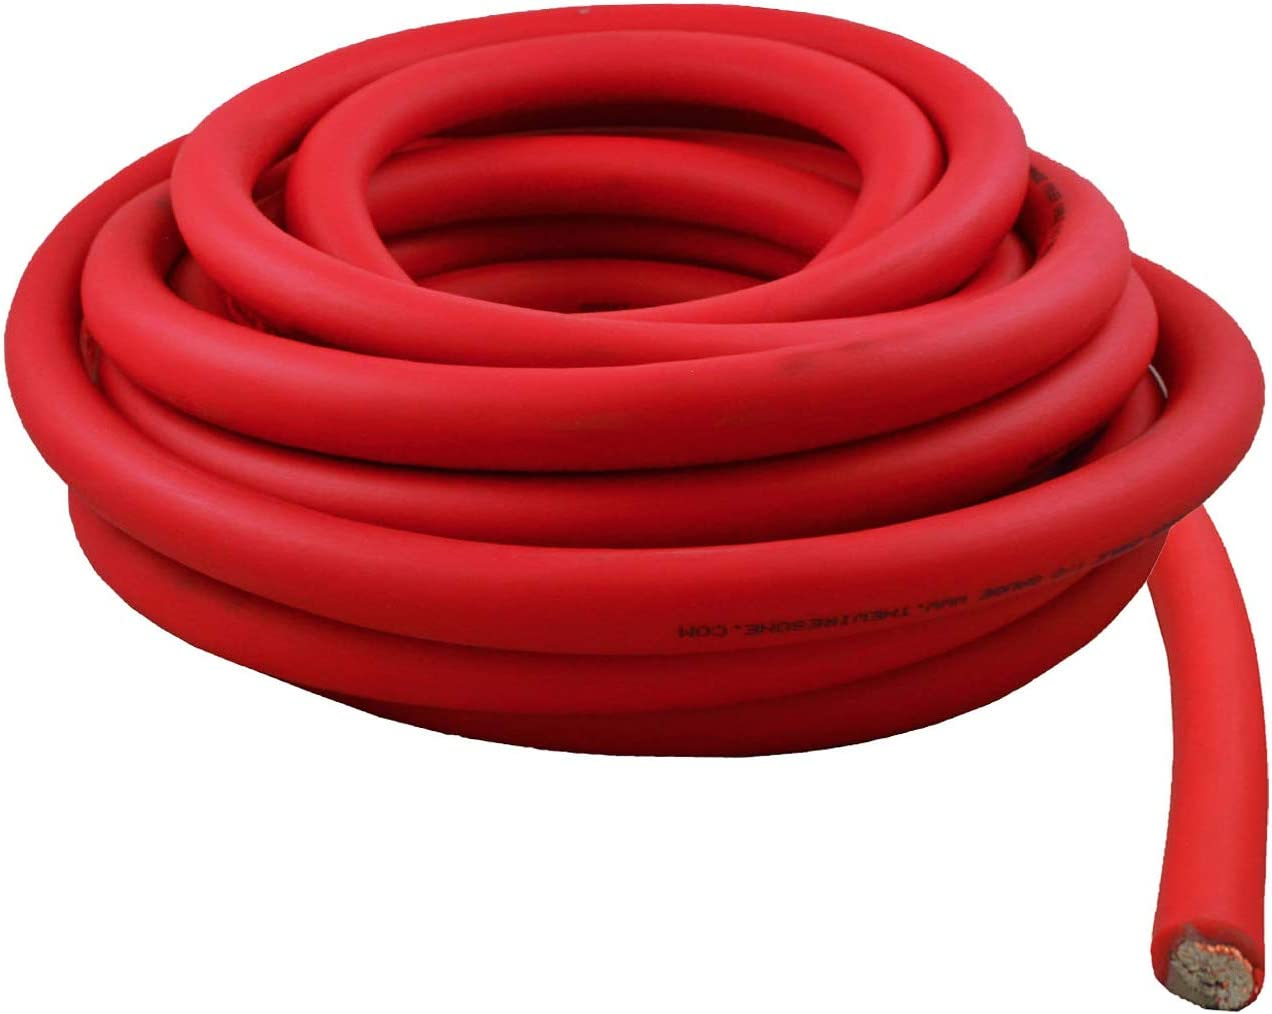 Red 0 Gauge 25 Feet Wire 1//0 AWG High Performance Flexible Amplifier Power Cable